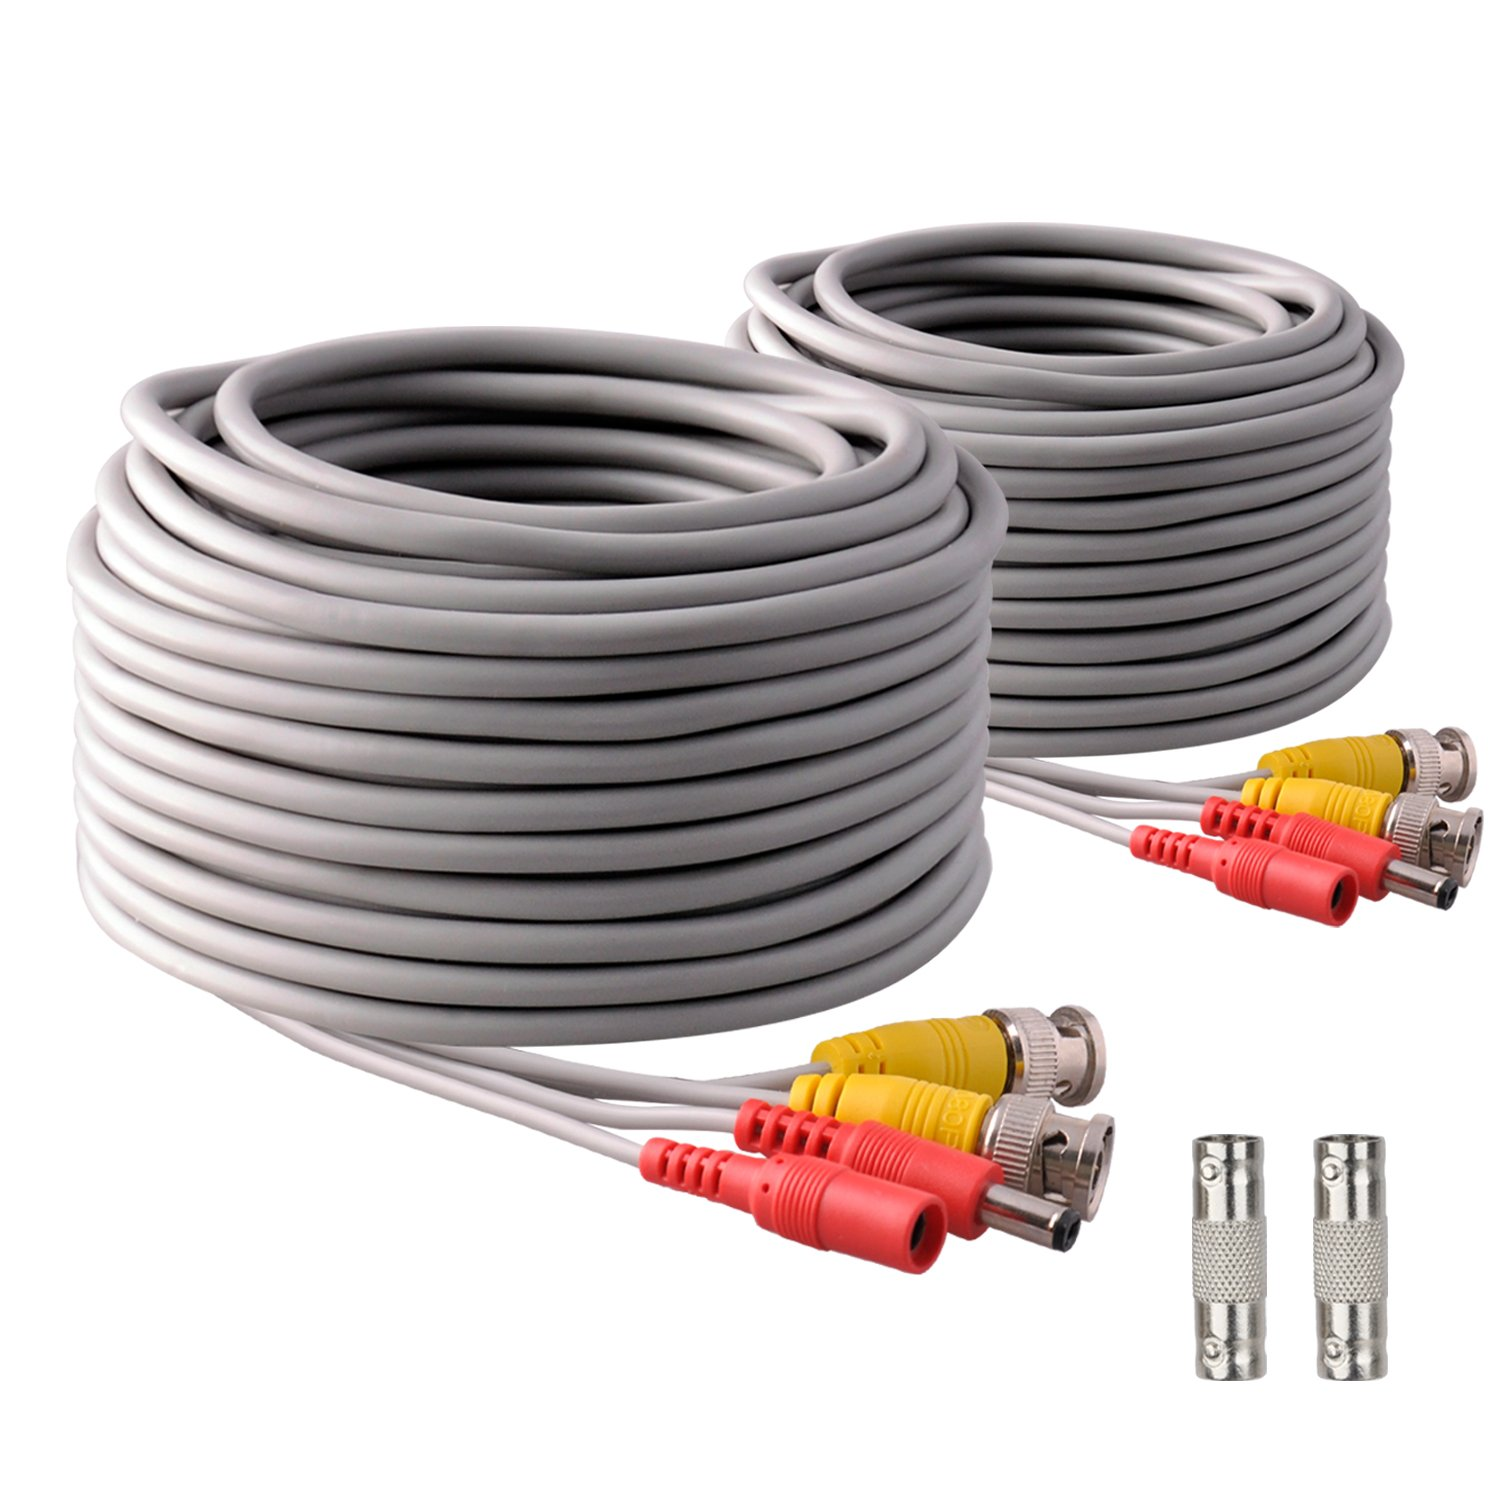 Cheap 5 Wire Bnc, find 5 Wire Bnc deals on line at Alibaba.com